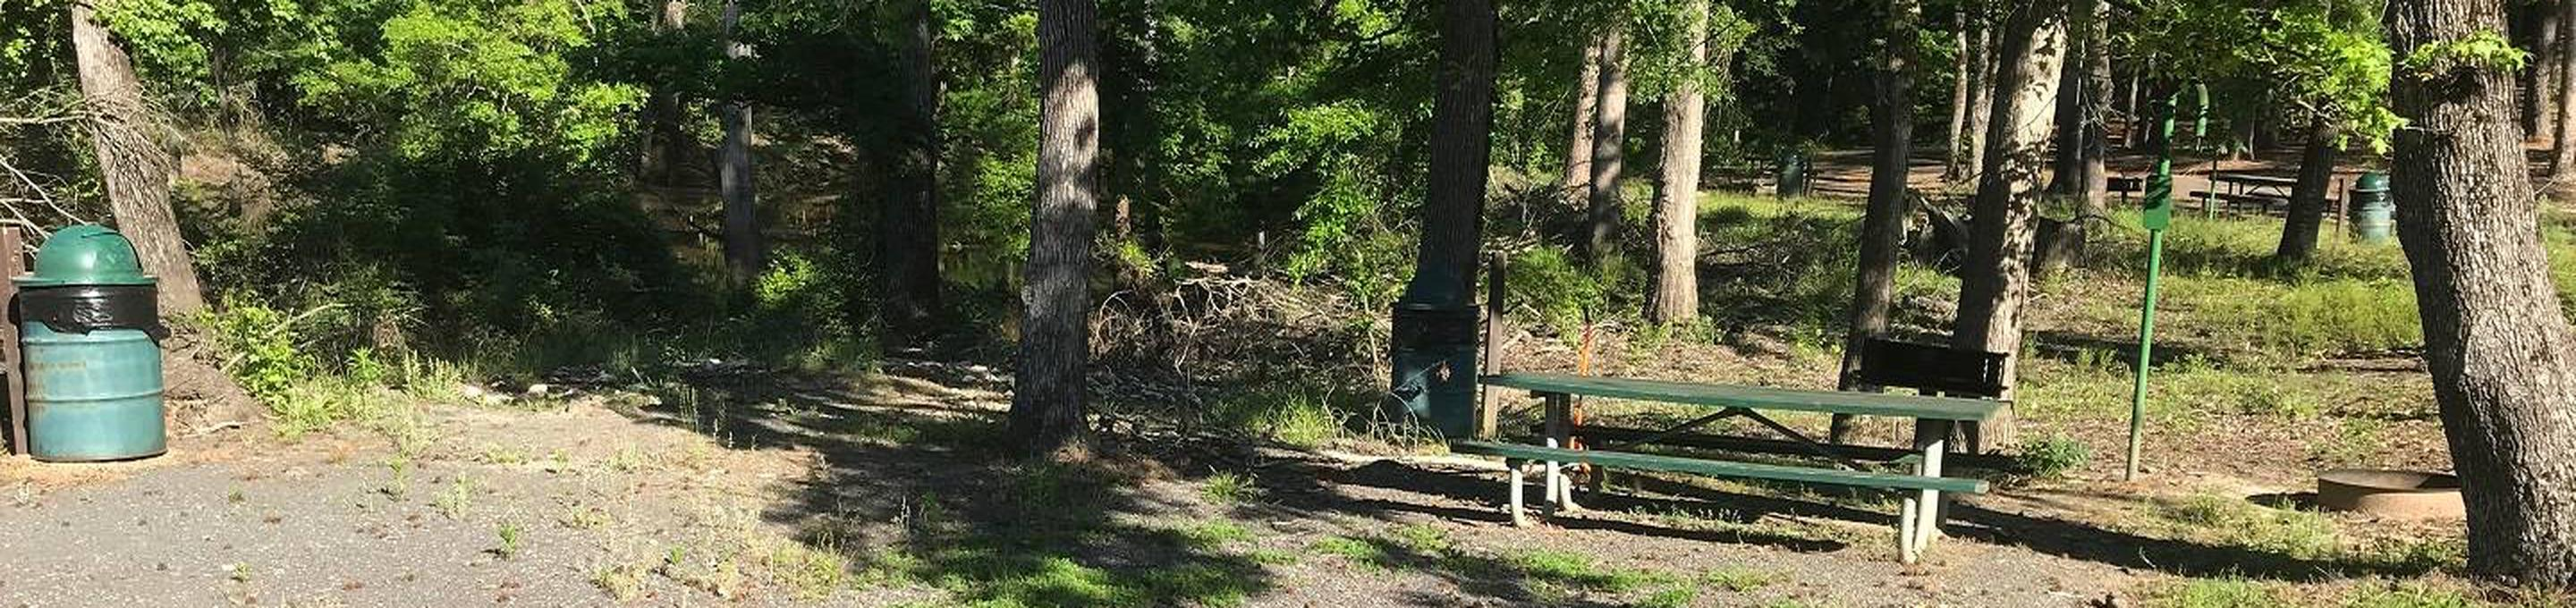 Campsite #5Campsite #5. Tent site with the following amenities: fire-pit, grill, picnic table, lantern pole, trash can.  Located along bayou.